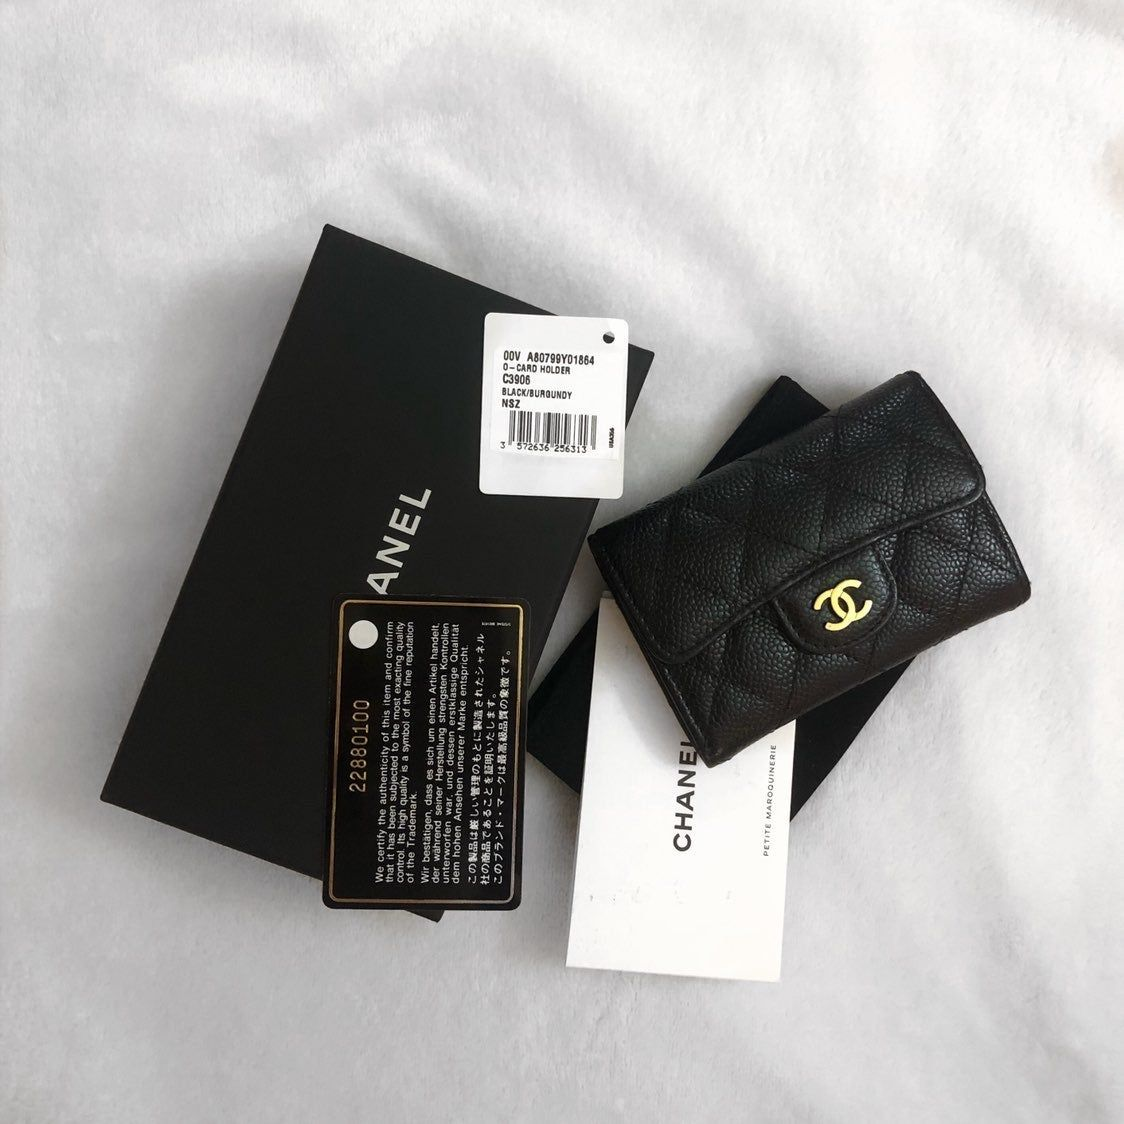 Chanel classic card holder in grained calfskin gold